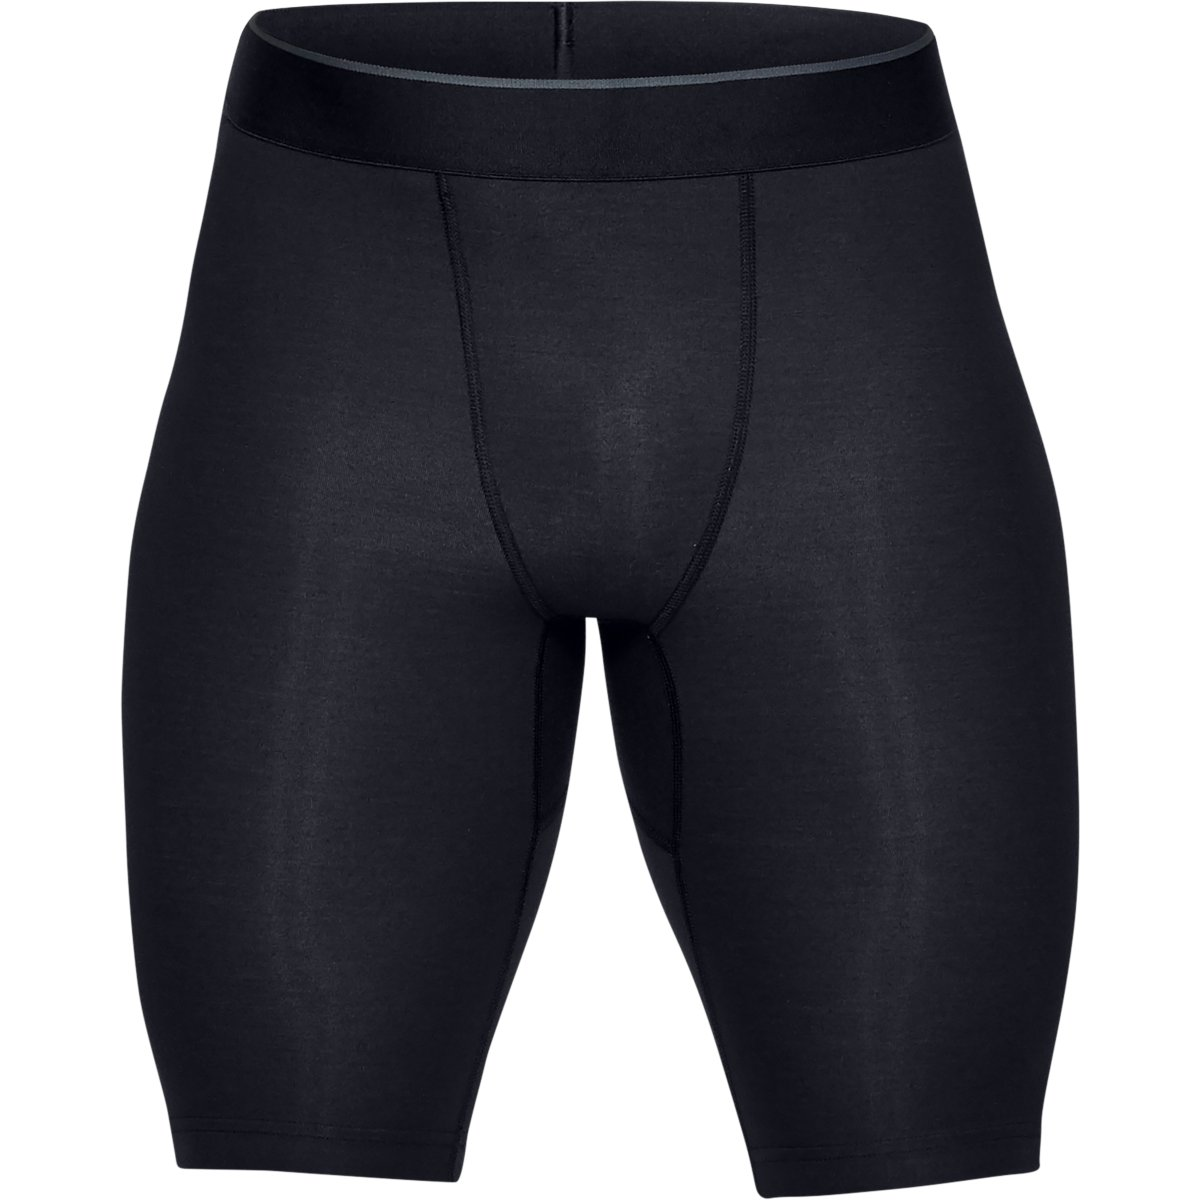 Under Armour Recovery Compression Short | Compression